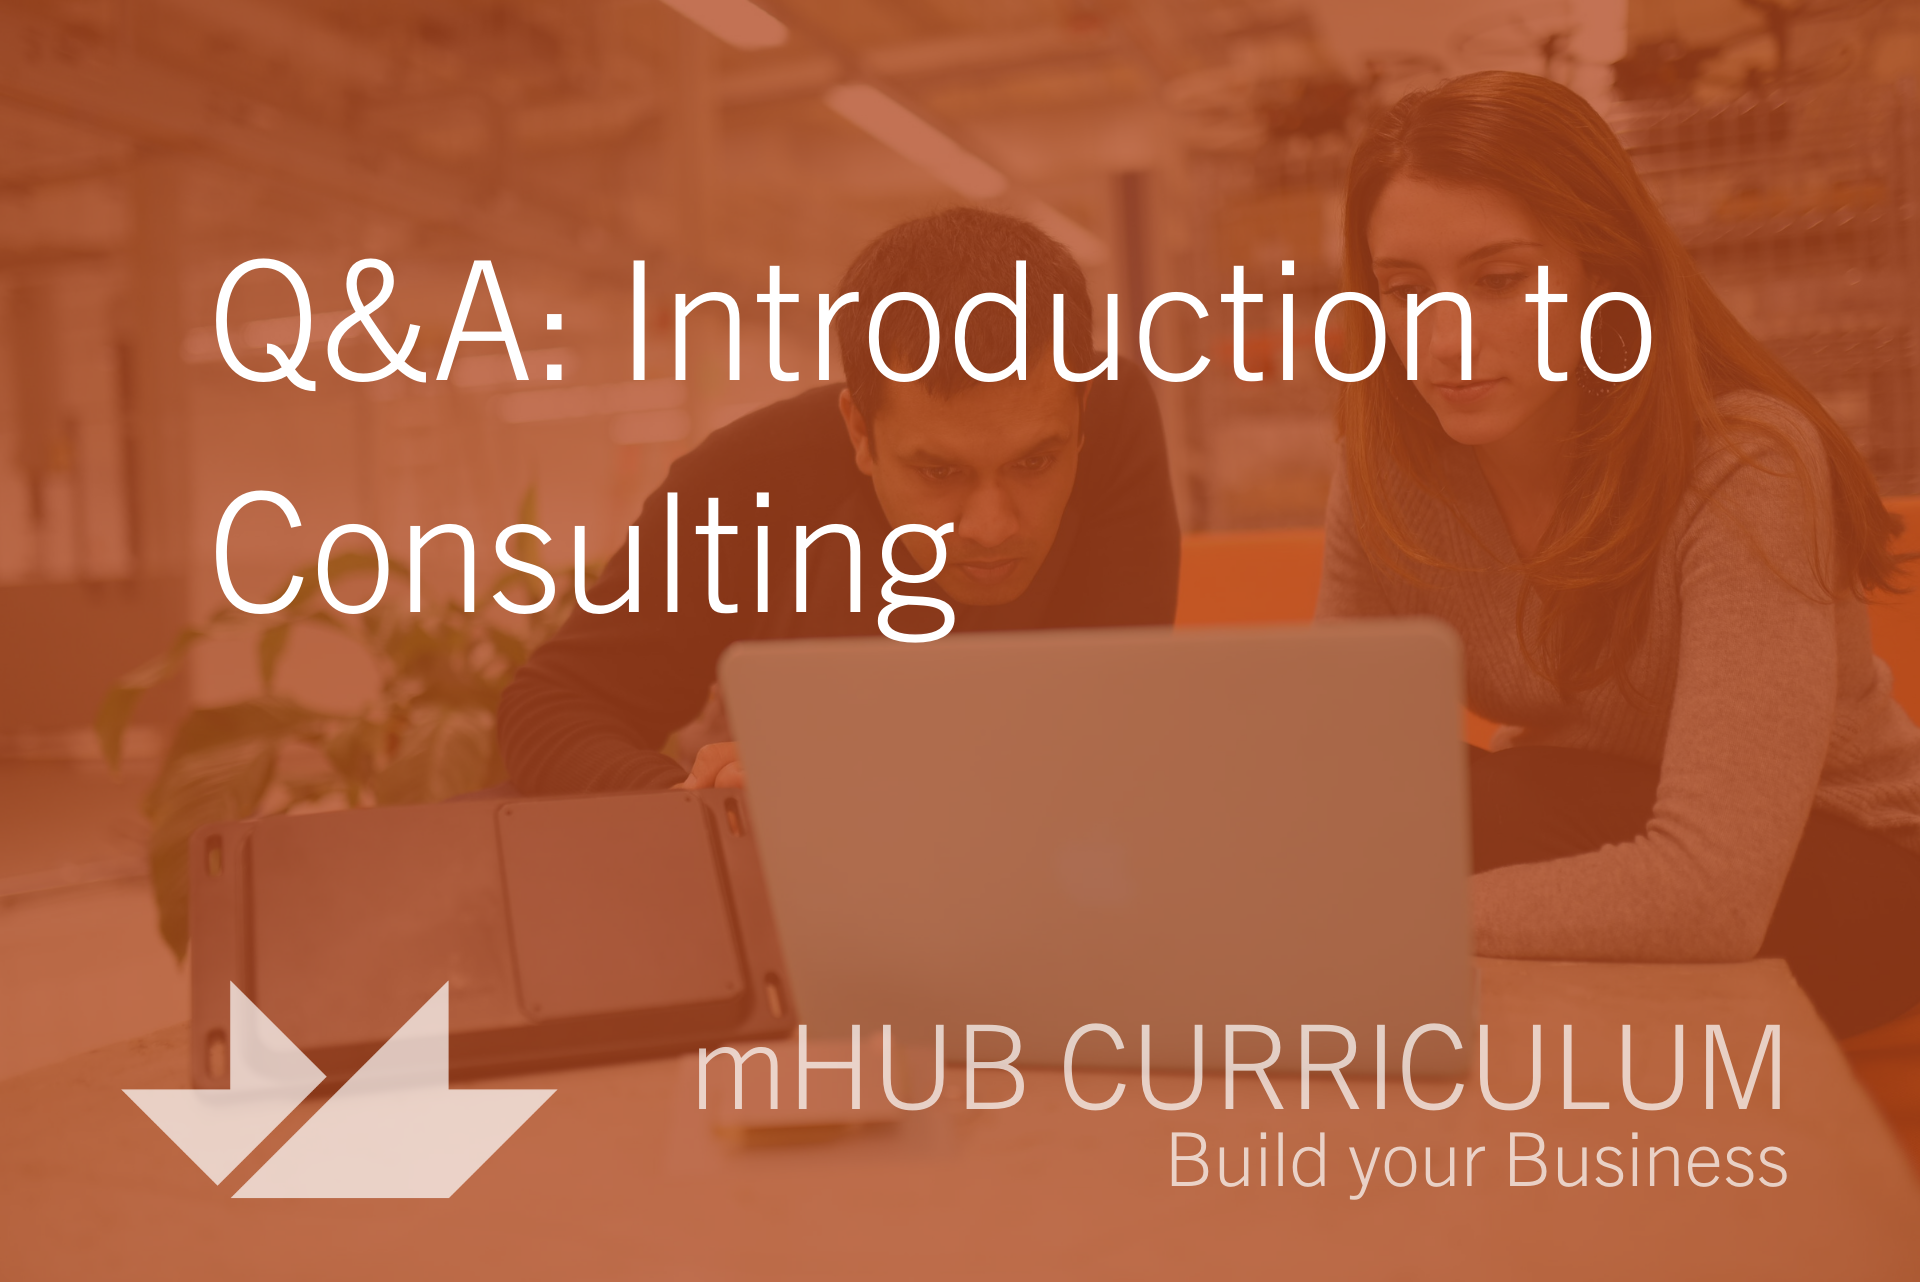 Q&A: Introduction to Consulting